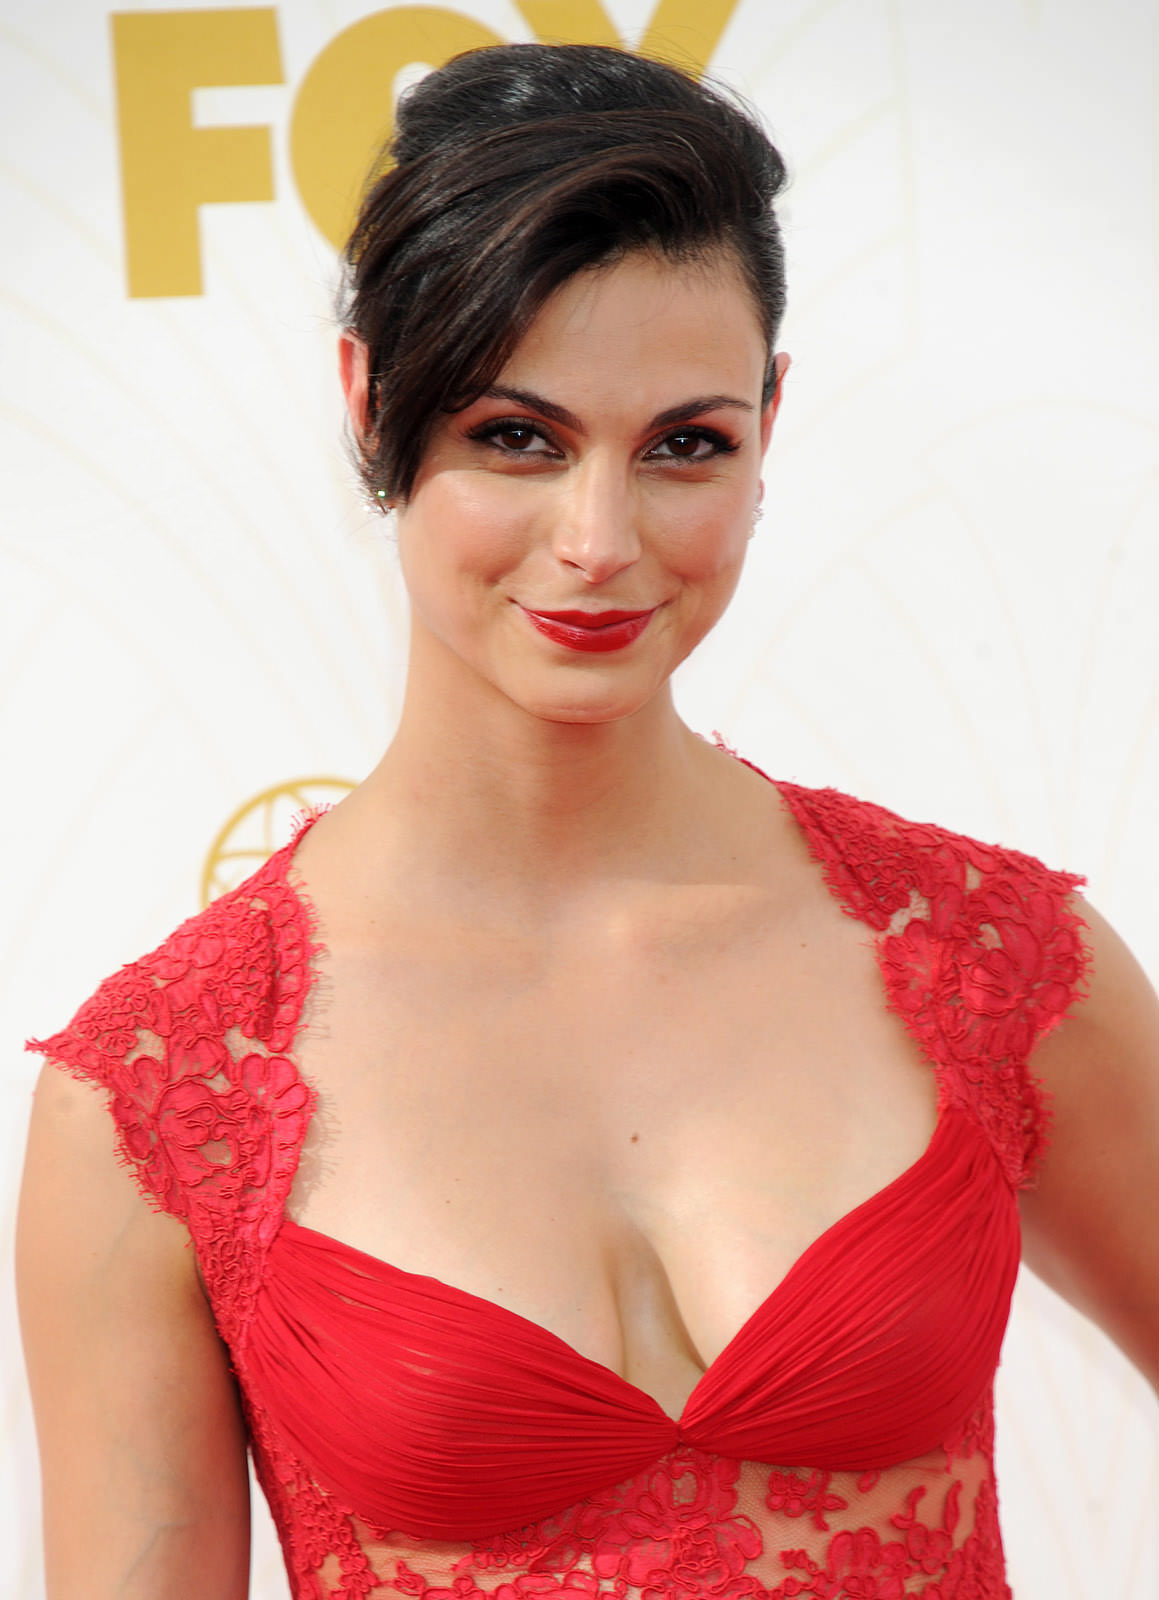 Morena Baccarin Photo Gallery